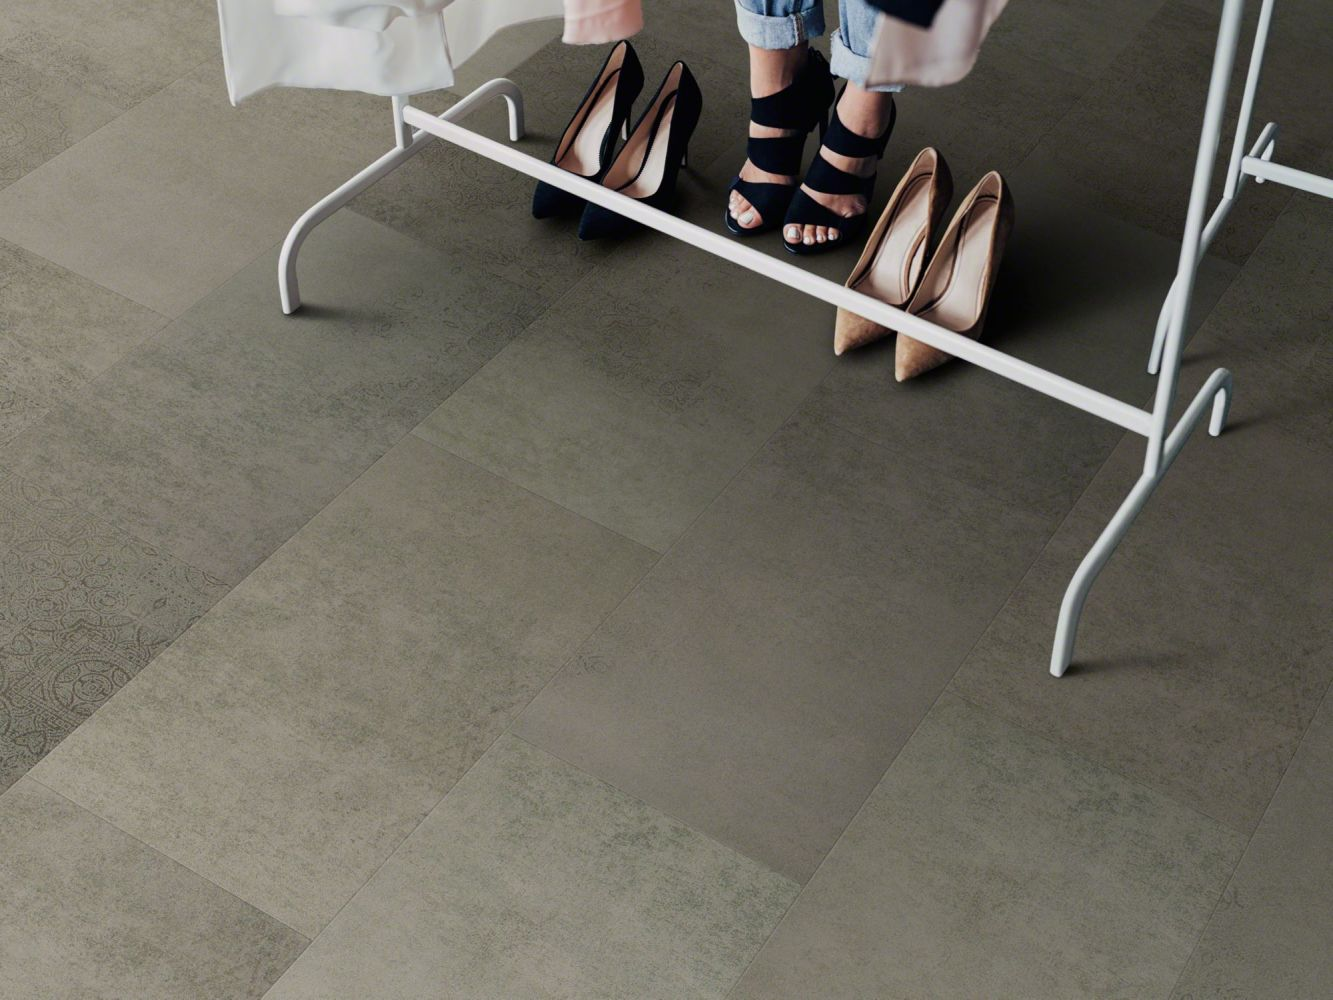 Shaw Floors Resilient Residential Set In Stone 720c Plus Bluff 00588_0834V